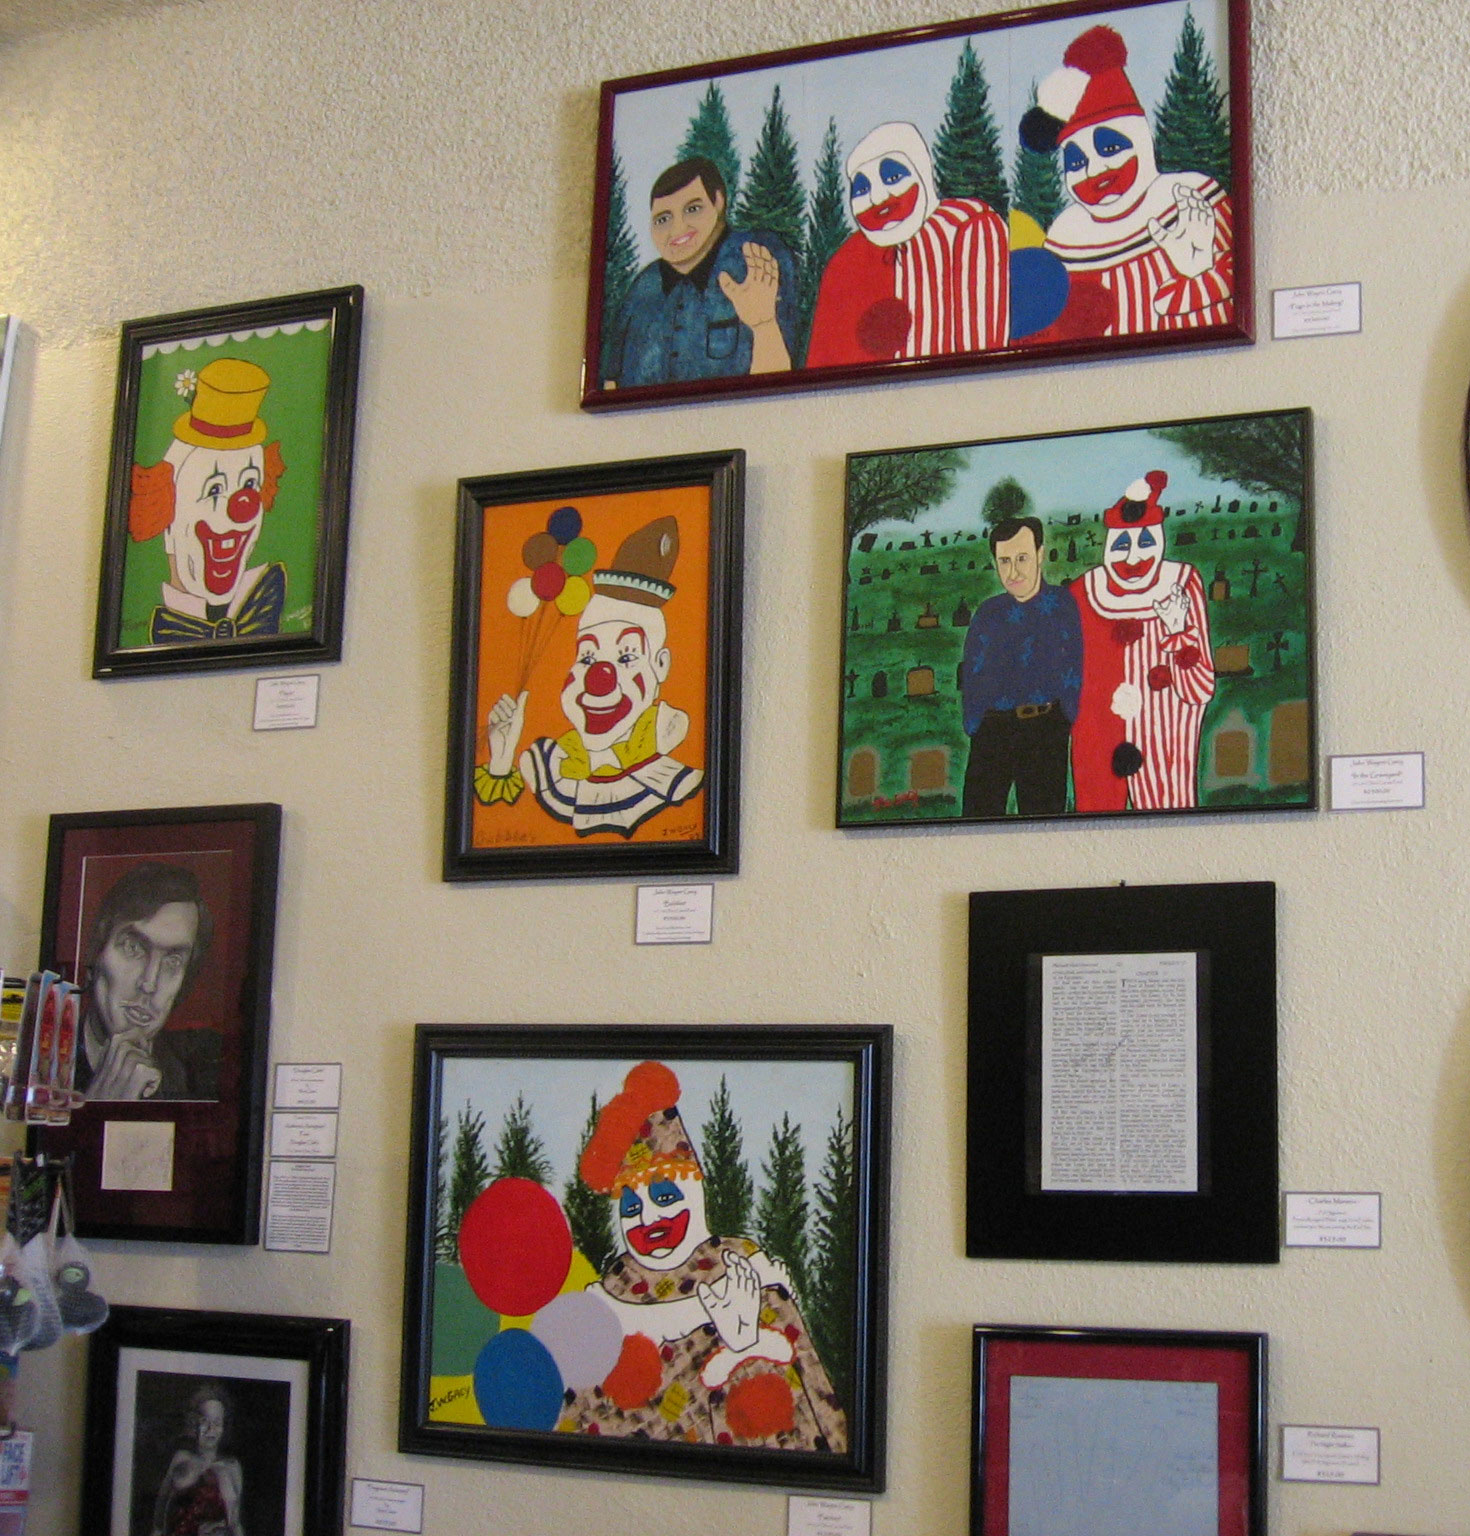 The Strange History Of This John Wayne Gacy Painting – The 13th Floor